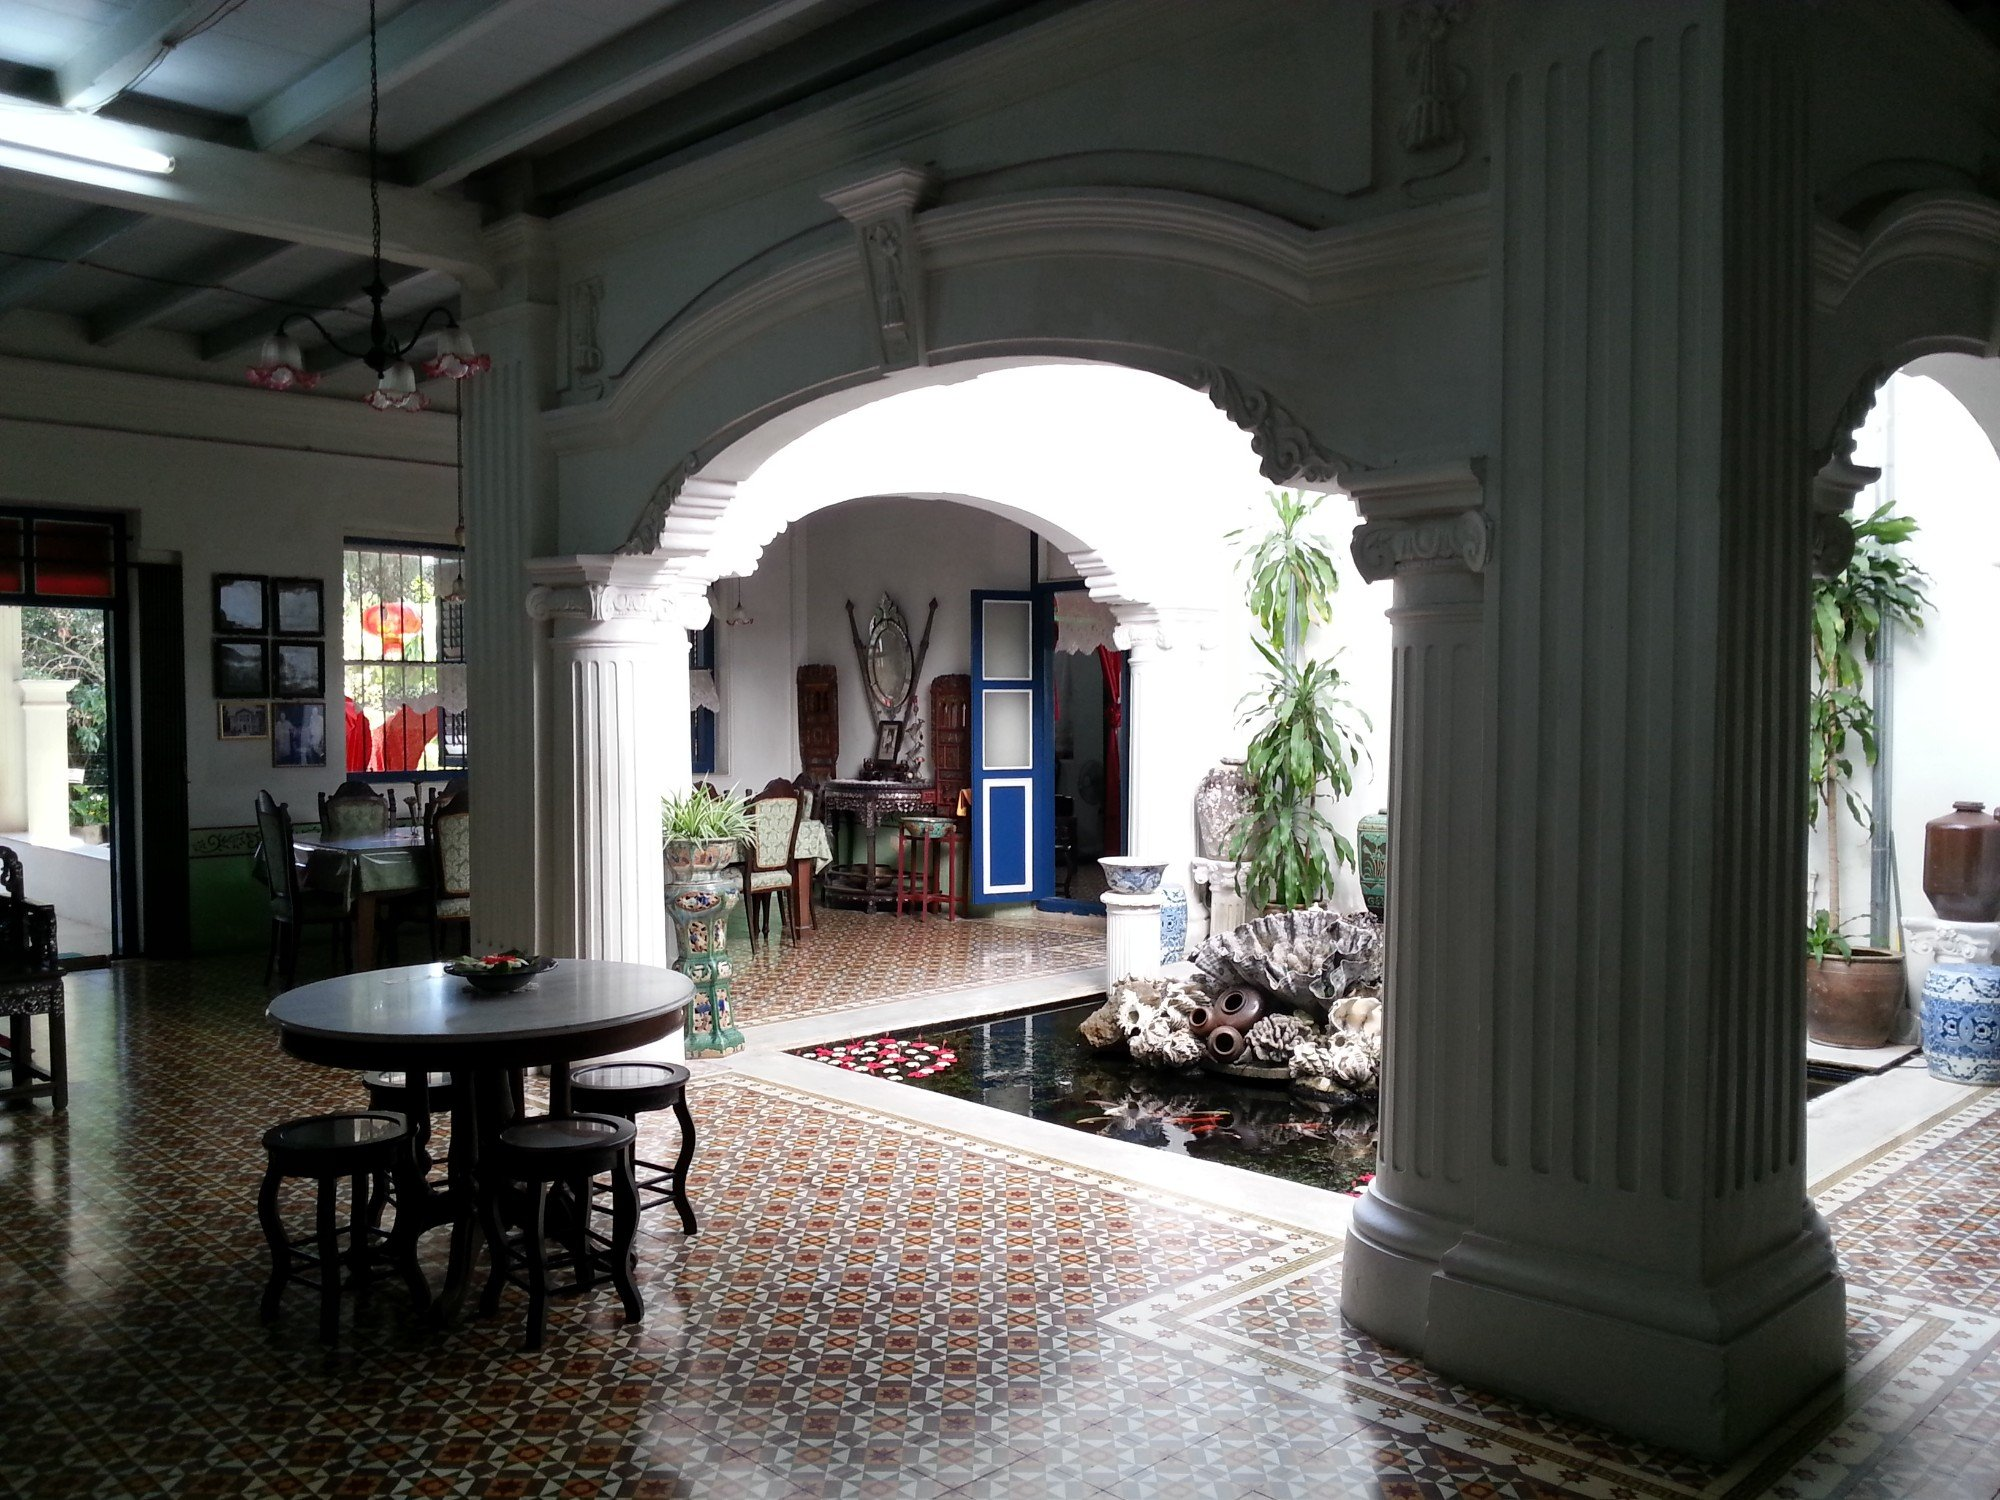 Courtyard in the Chinpracha House